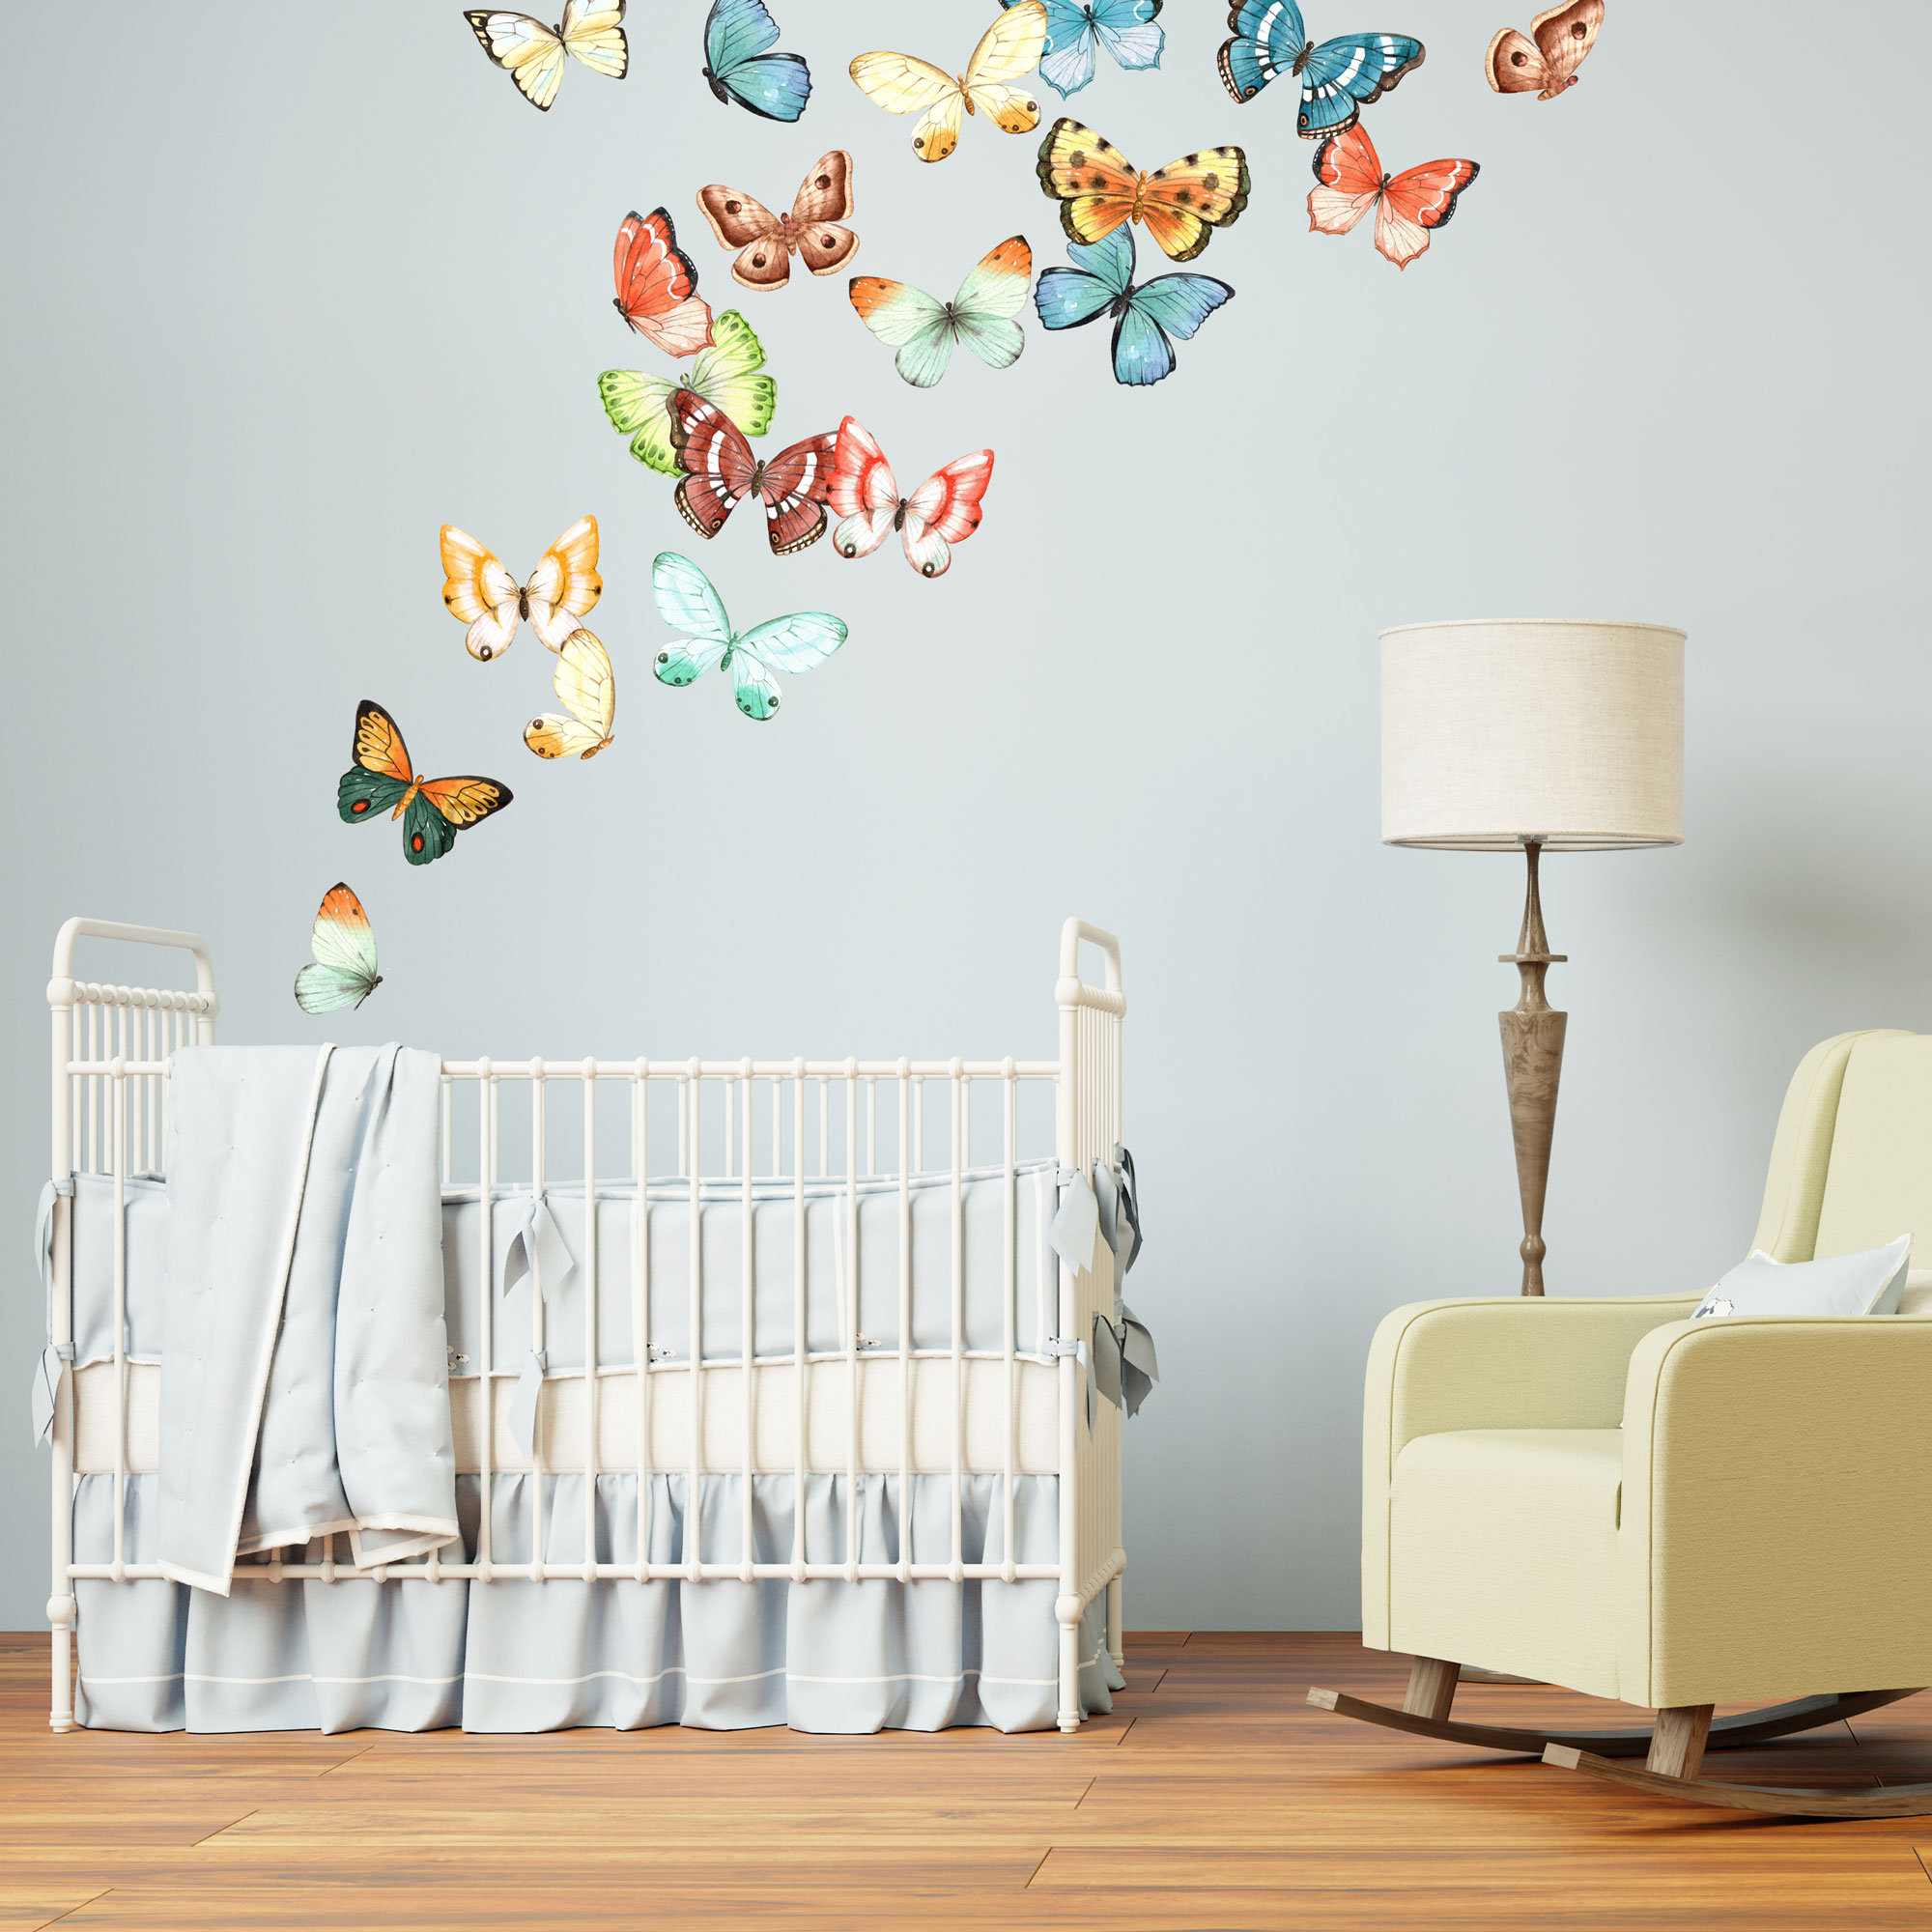 Butterfly Wall Decals Made From Peel And Stick Wallpaper Material – Removable – 20 Butterflies Included – Wb920 Intended For 3 Piece Capri Butterfly Wall Decor Sets (View 23 of 30)